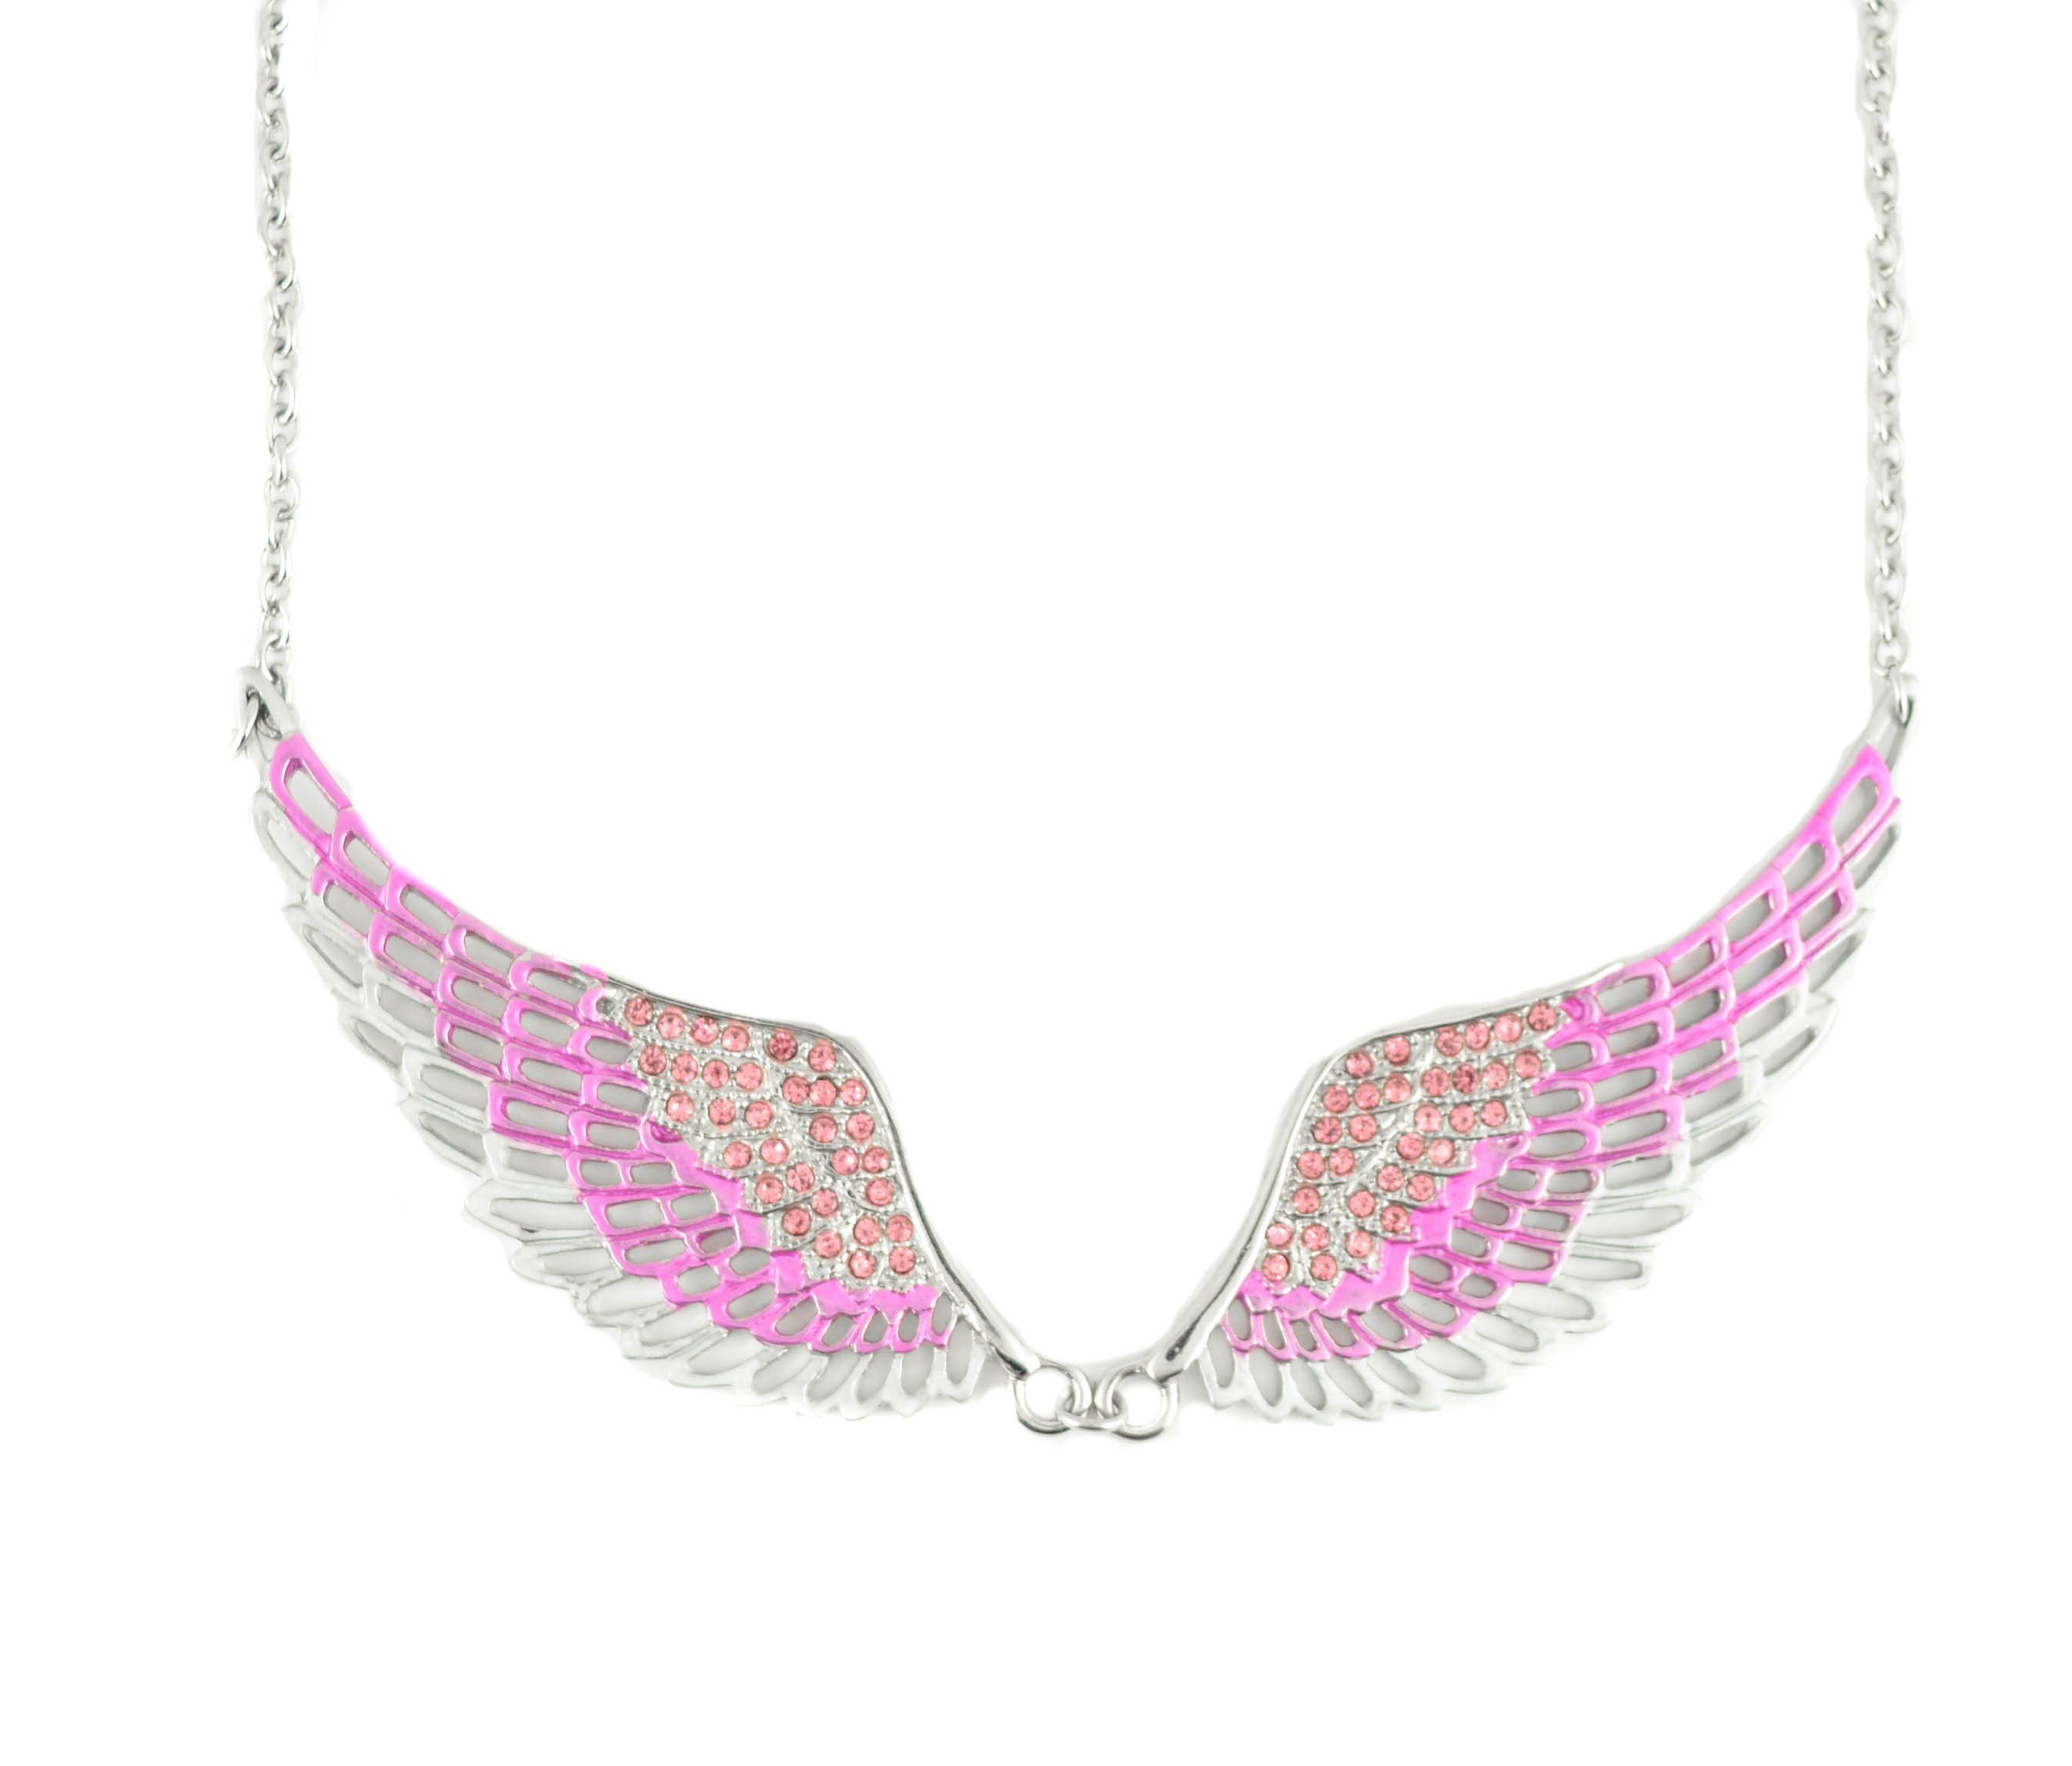 winged necklace teen challenge gaintl